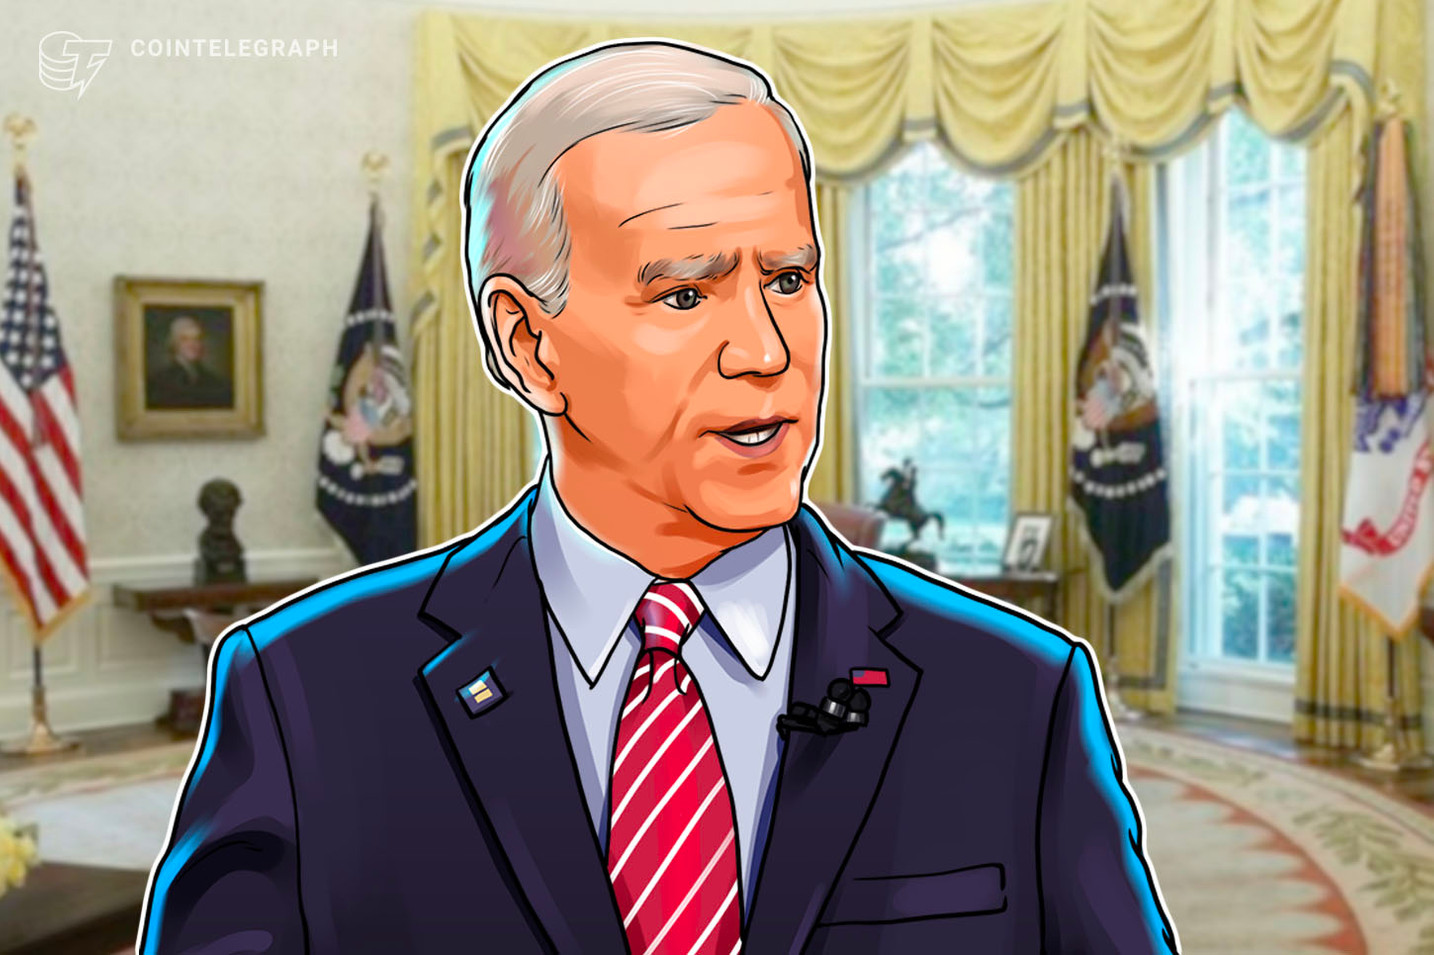 Biden hints at possible cybersecurity arrangement with Russia over ransomware attacks